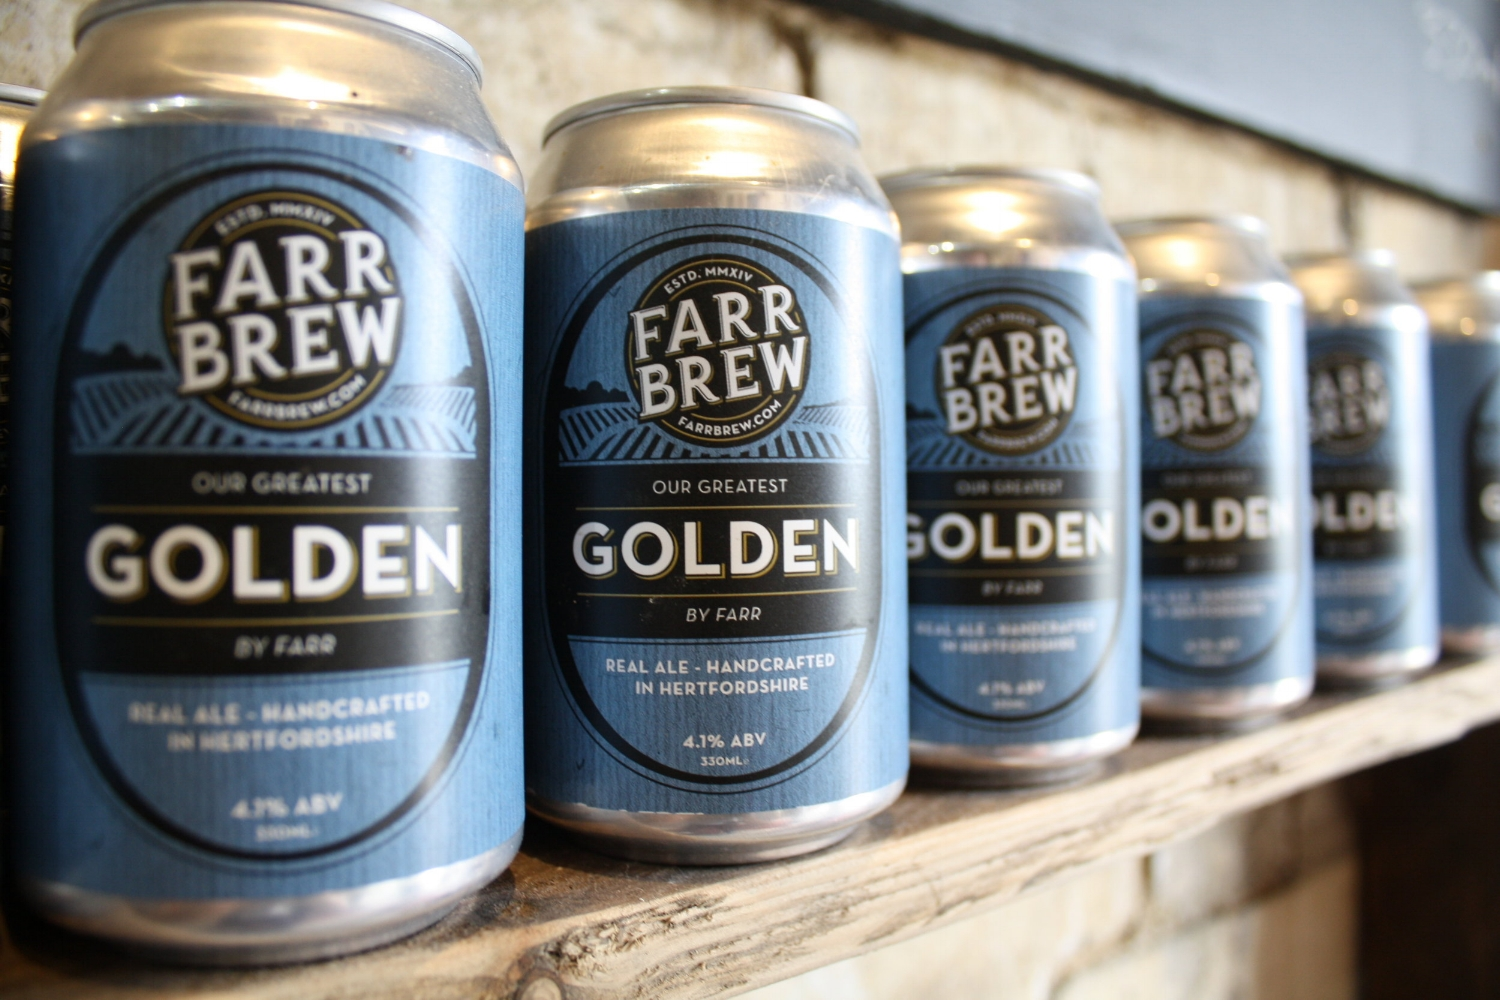 onebigcompany-london-packaging-design-art-direction-craft-beer-farr-brew-micro-brewery-can.jpg